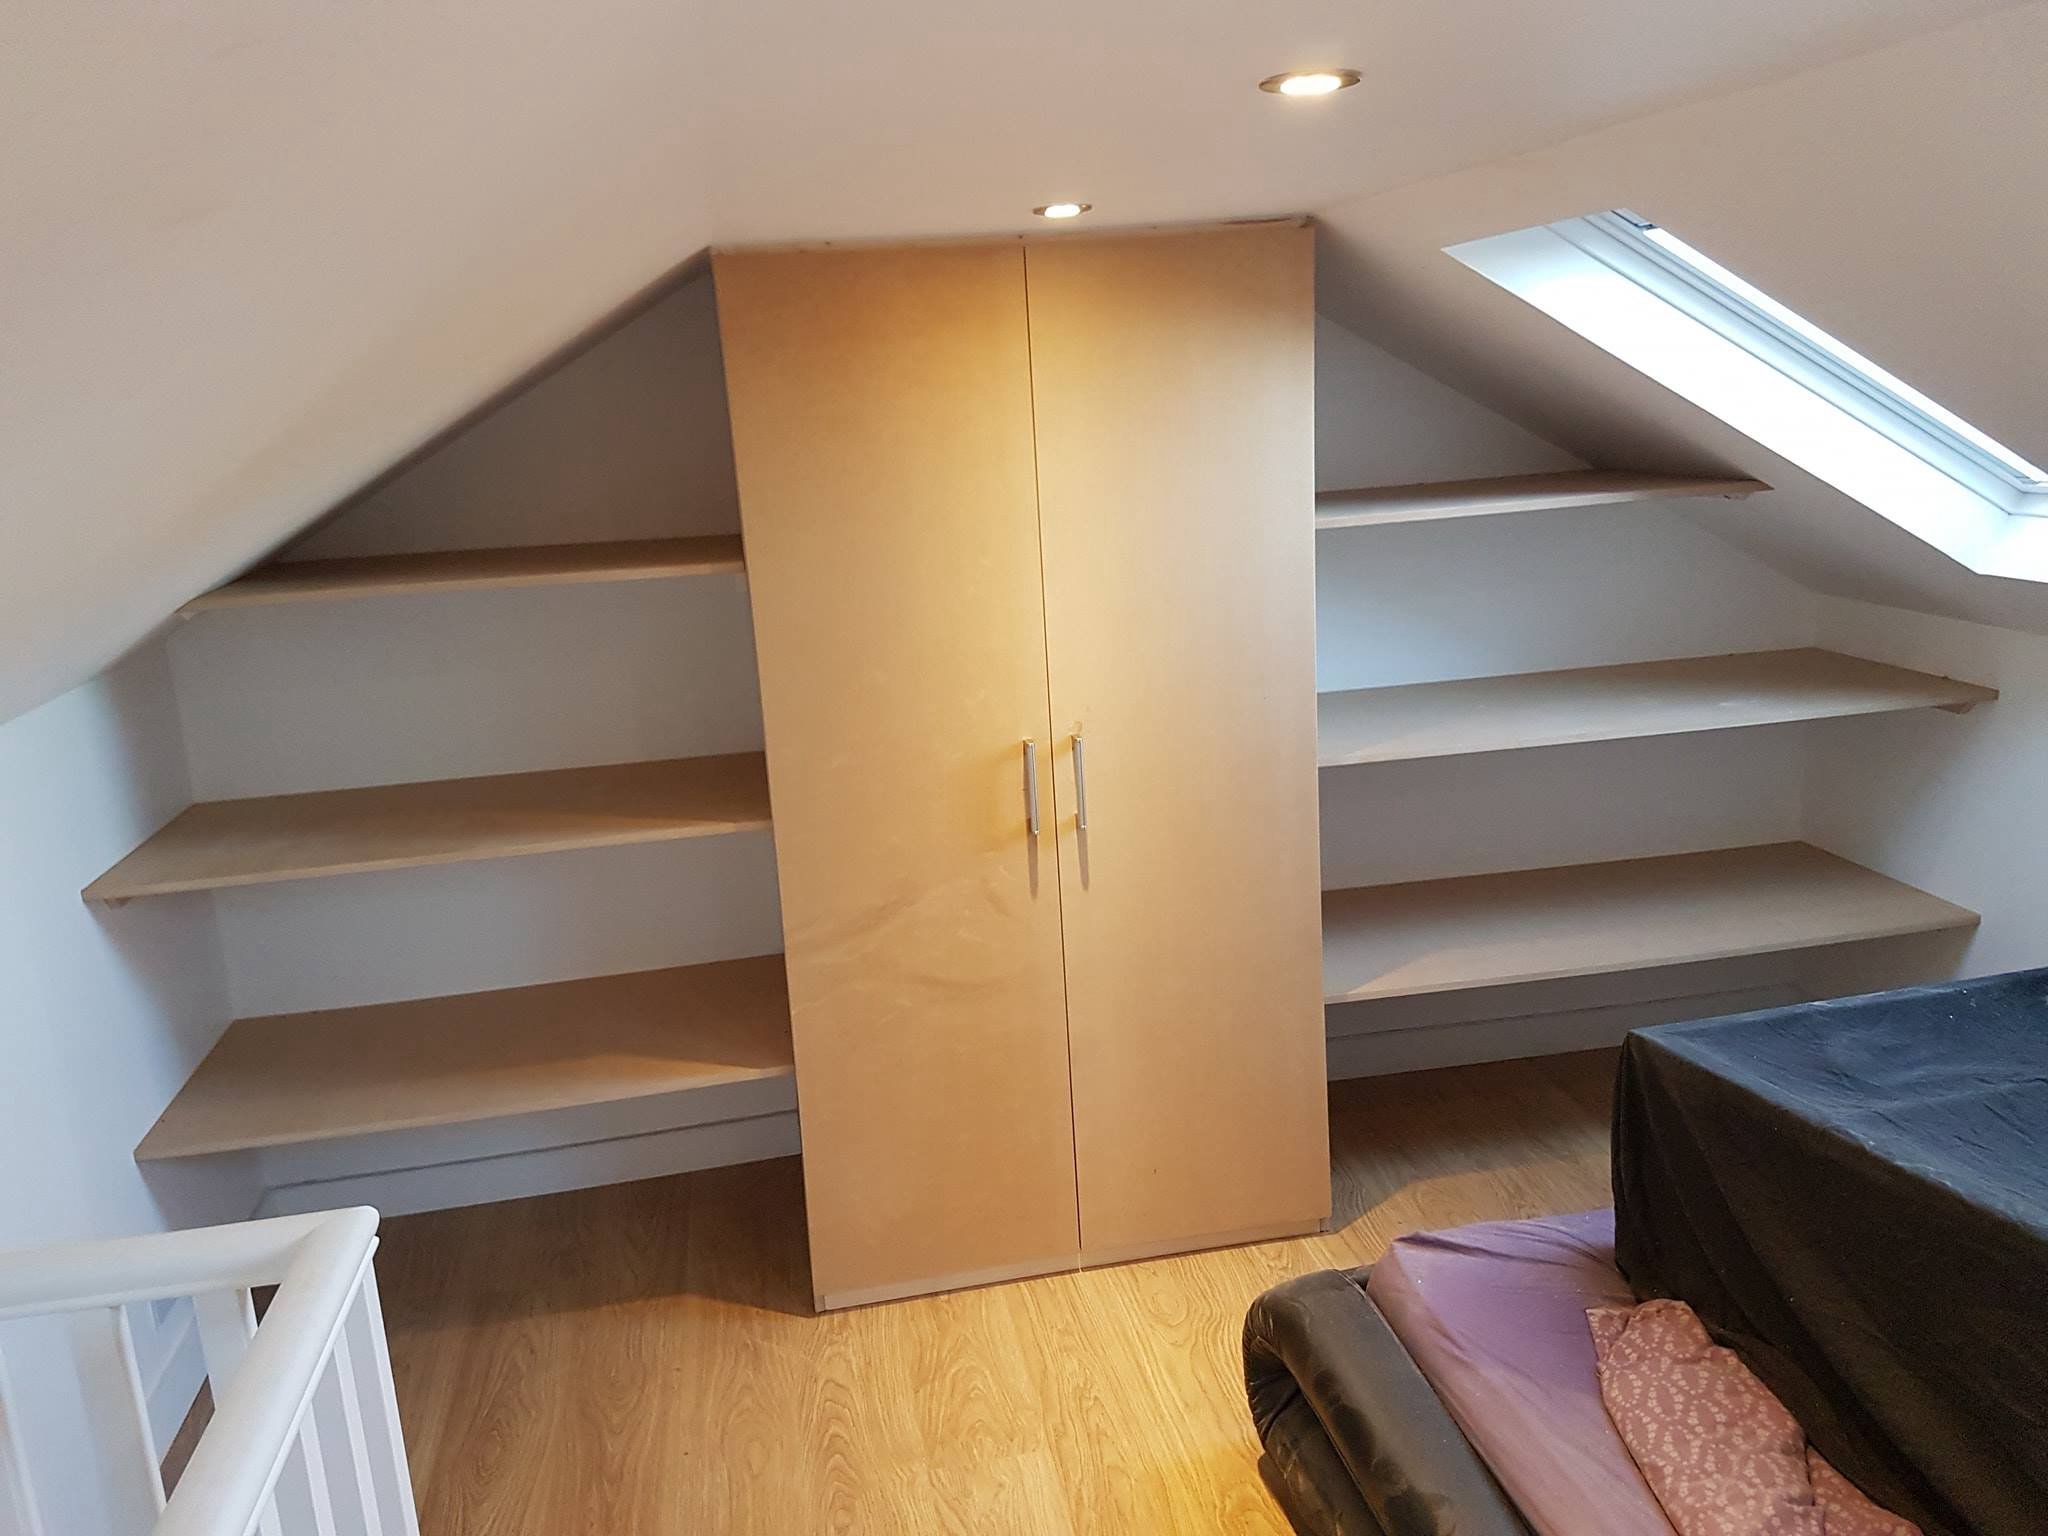 Attic Room - Wardrobe and Shelving